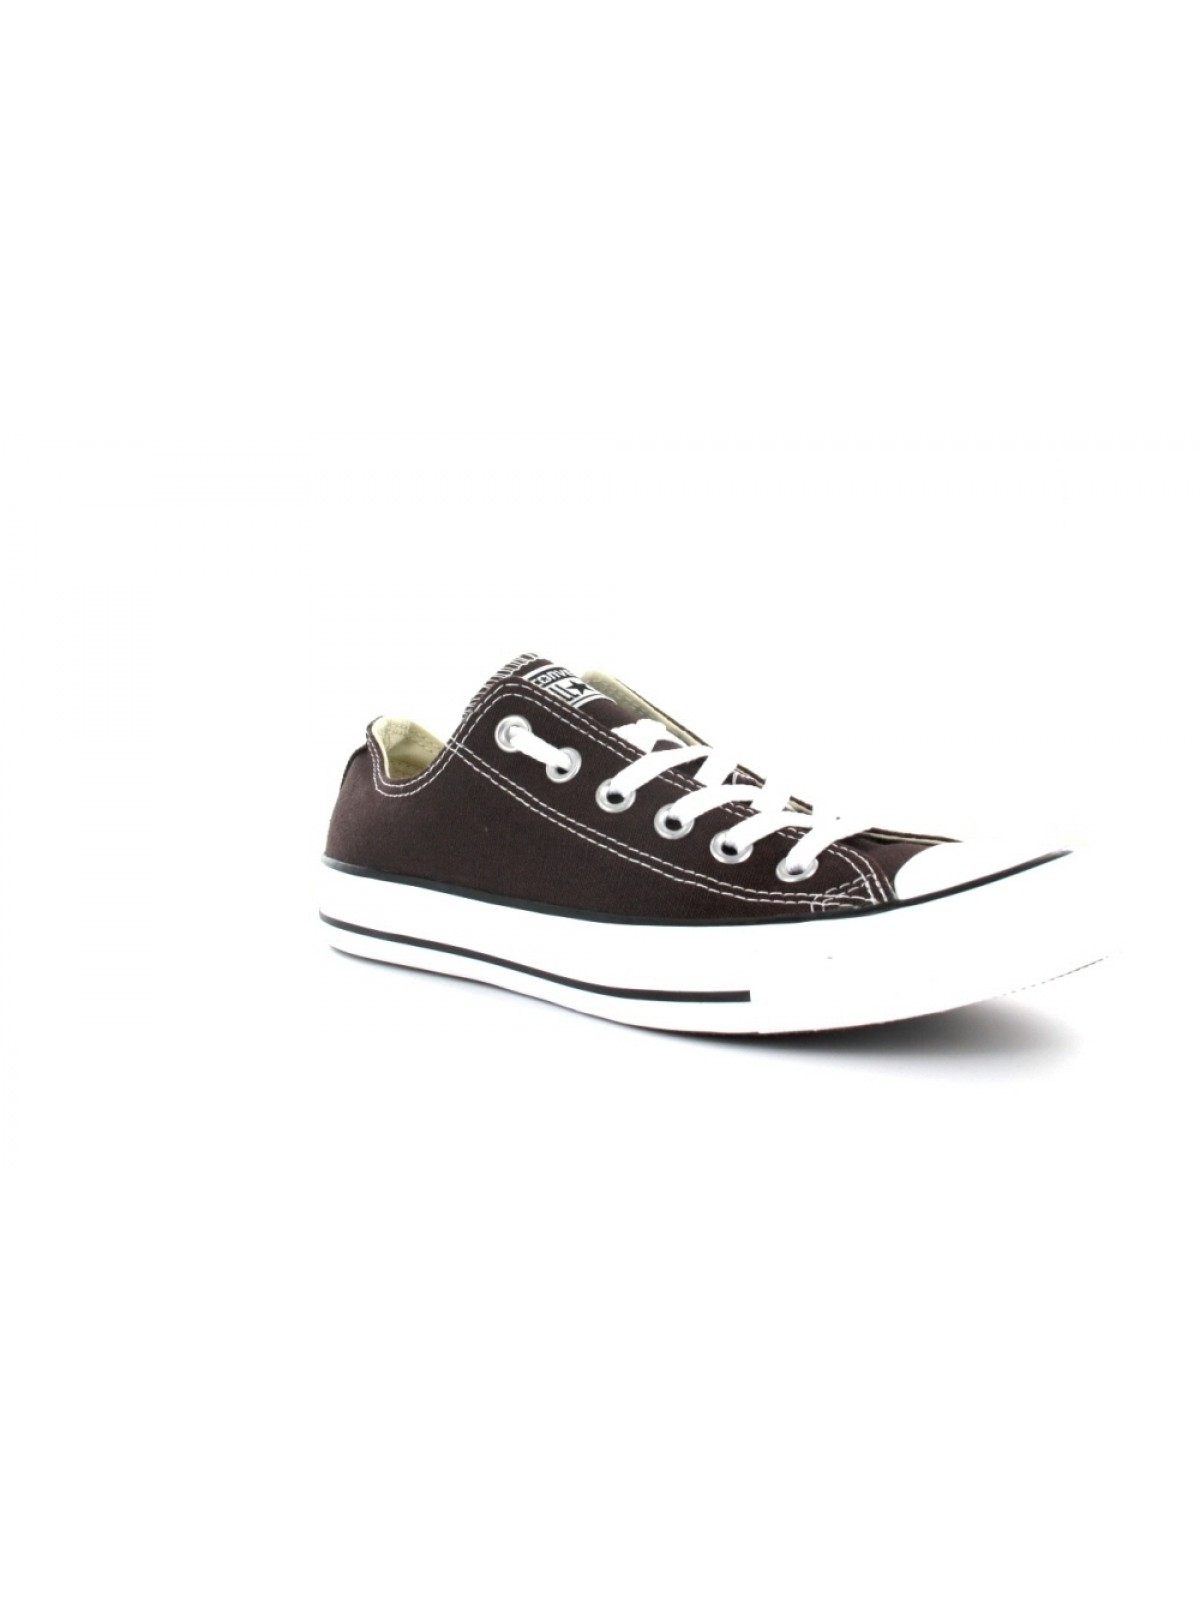 Converse Chuck Taylor all star toile basse marron